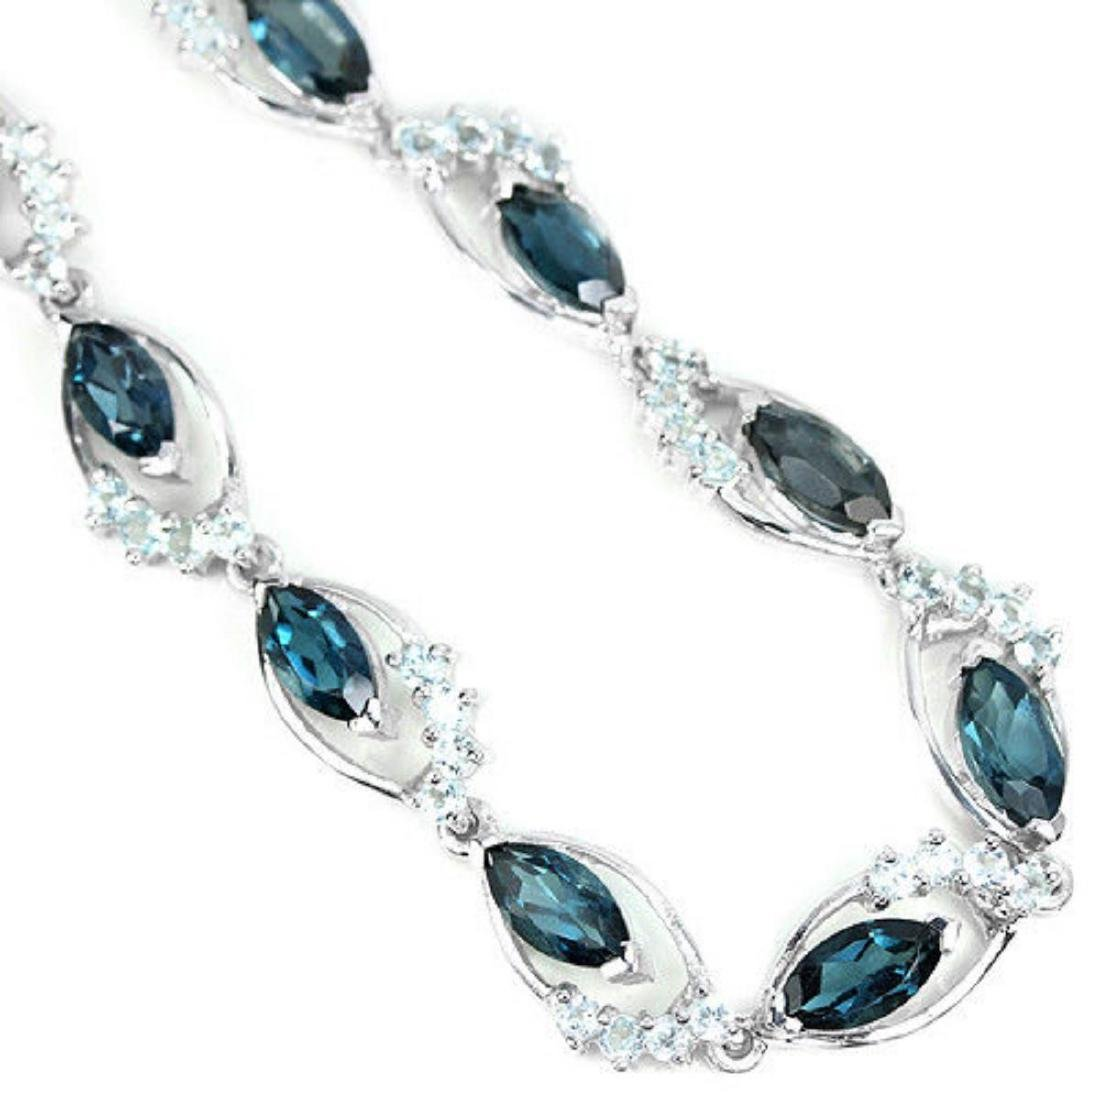 LONDON & SKY BLUE TOPAZ Bracelet - 2